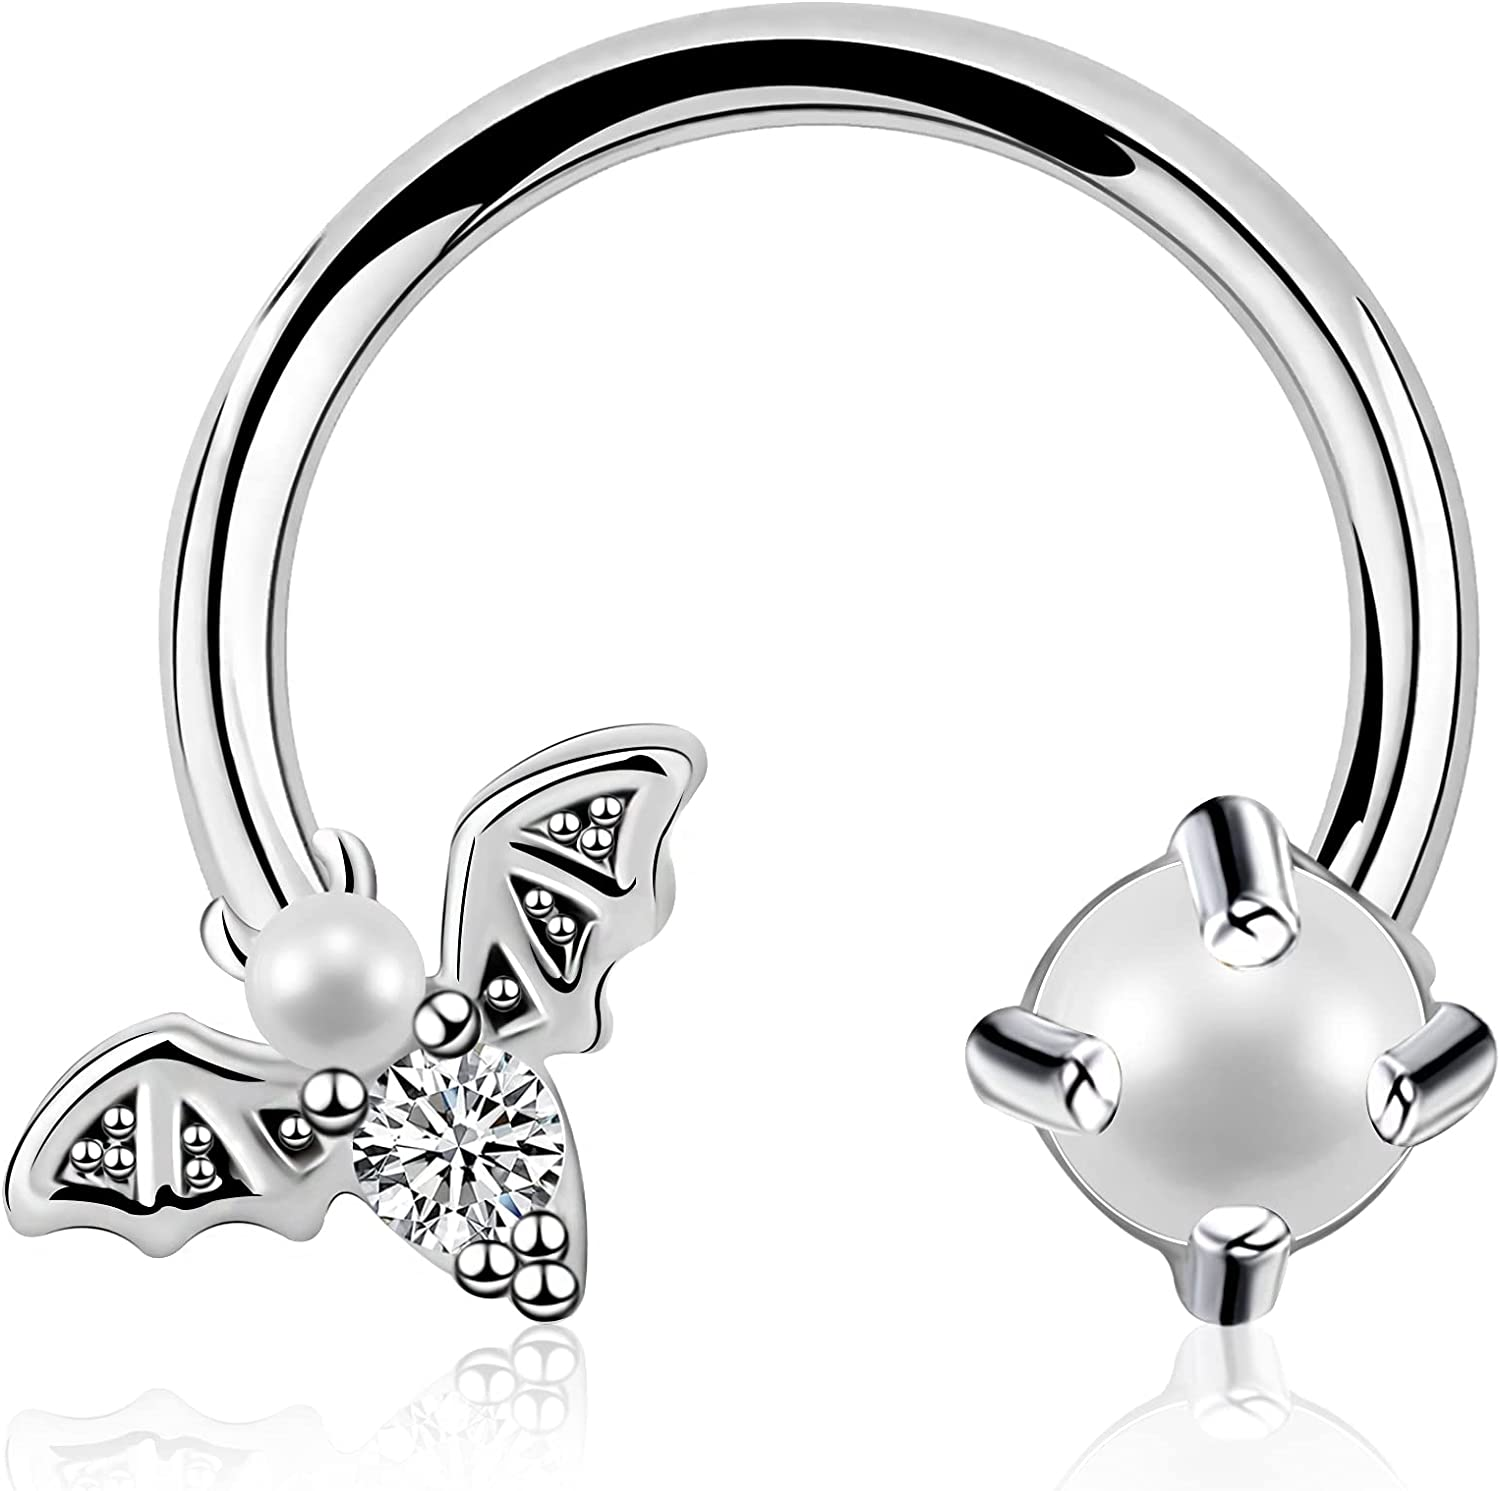 JEWSEEN Bat Septum Ring 16g Captive Bead Ring 316L Stainless Steel Daith Earring Trsgus Earring Body Piercing Jewelry for Halloween Day